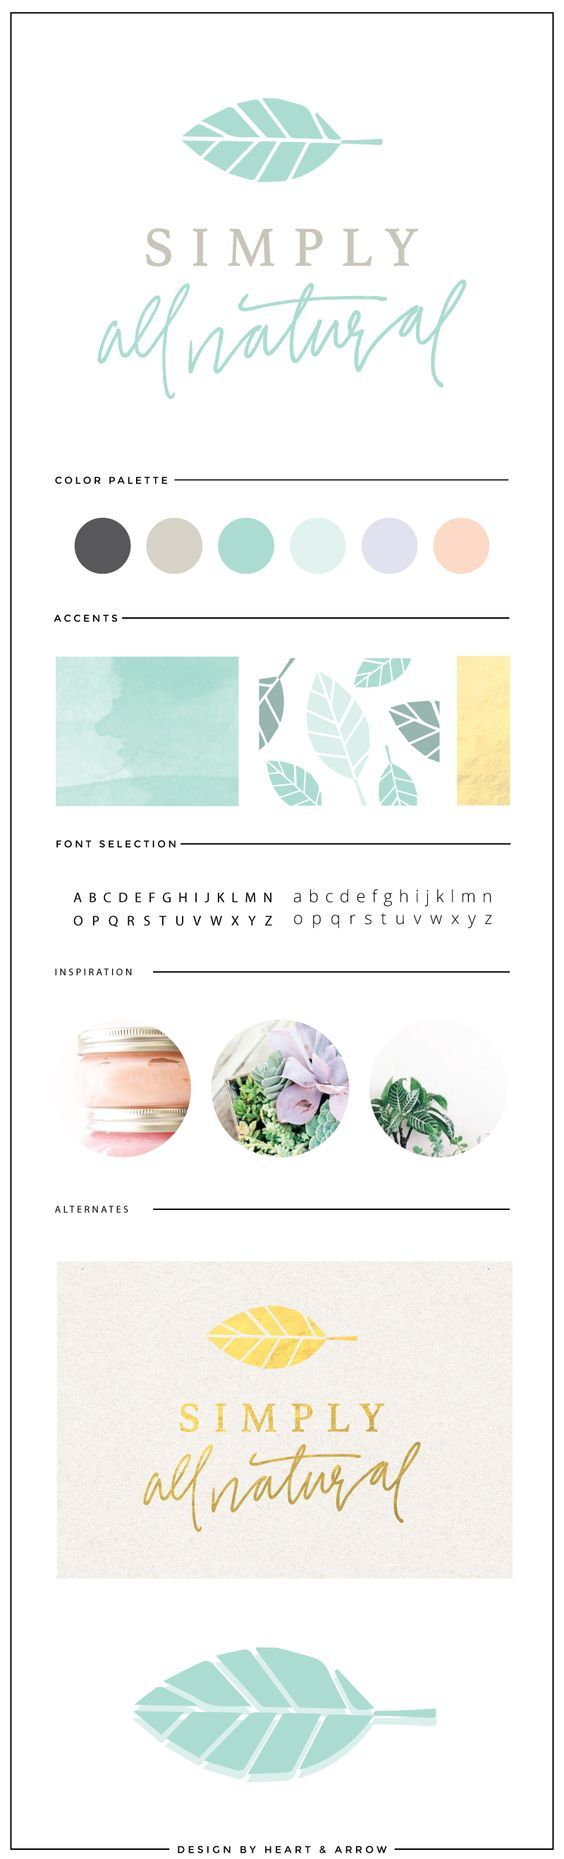 "Like the colors.  The ""all natural"" is an ok font, but I would like something a bit less sloppy still.  The image is simple and elegant, but all the fun is in the 2nd cursive font ................................................. DESIGN SITE."